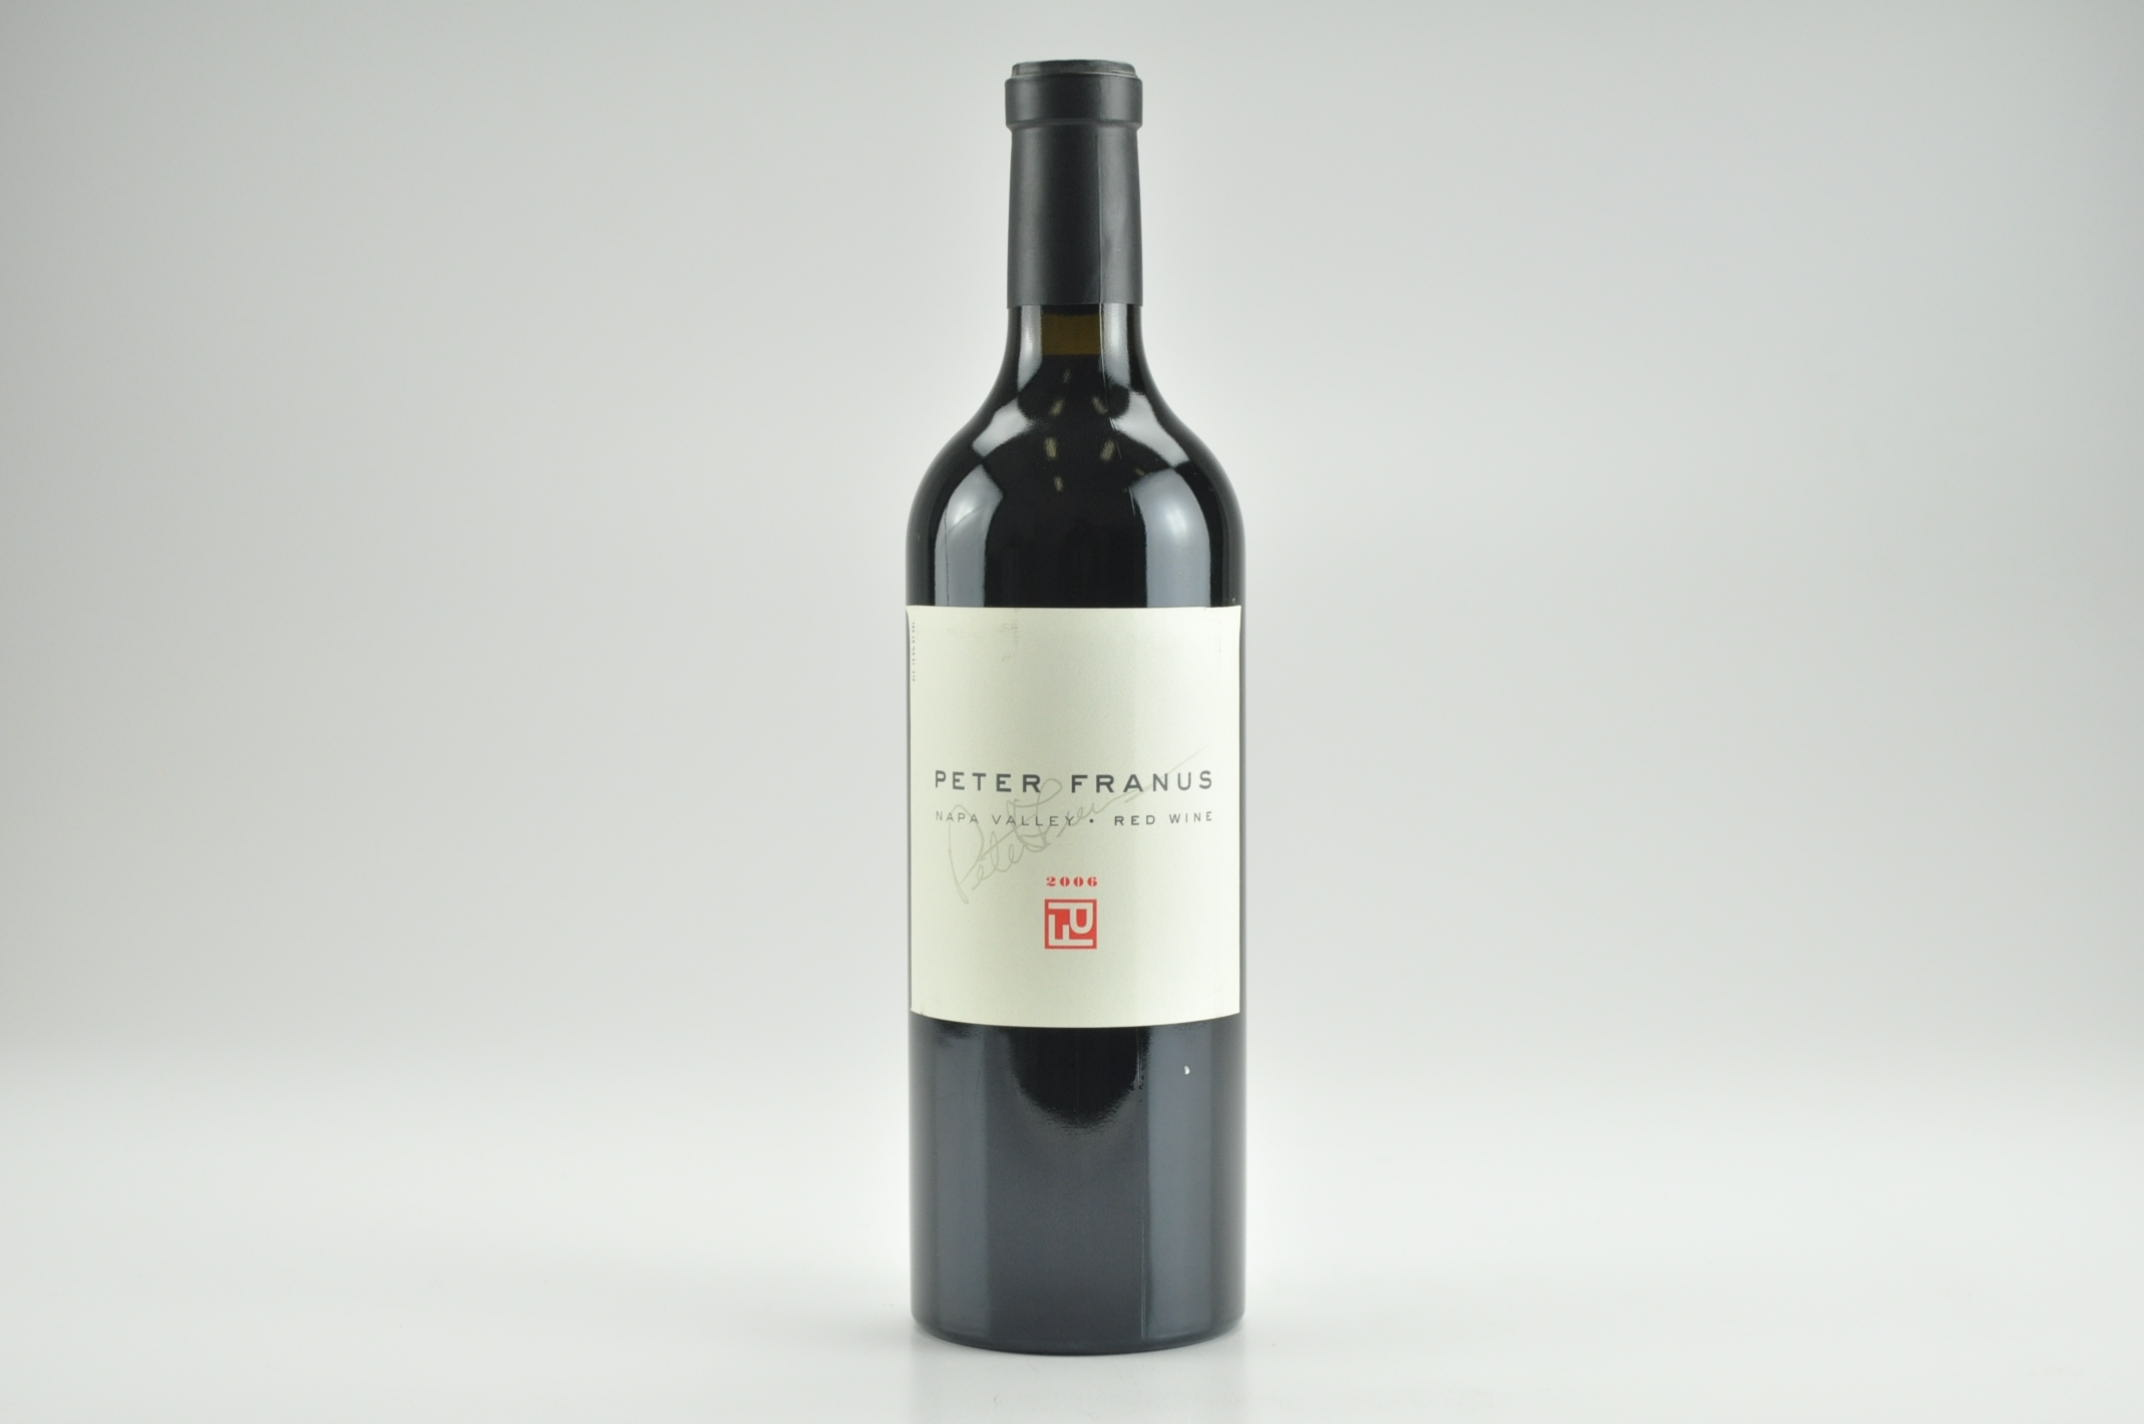 2006 Peter Franus Red Wine, Napa Valley